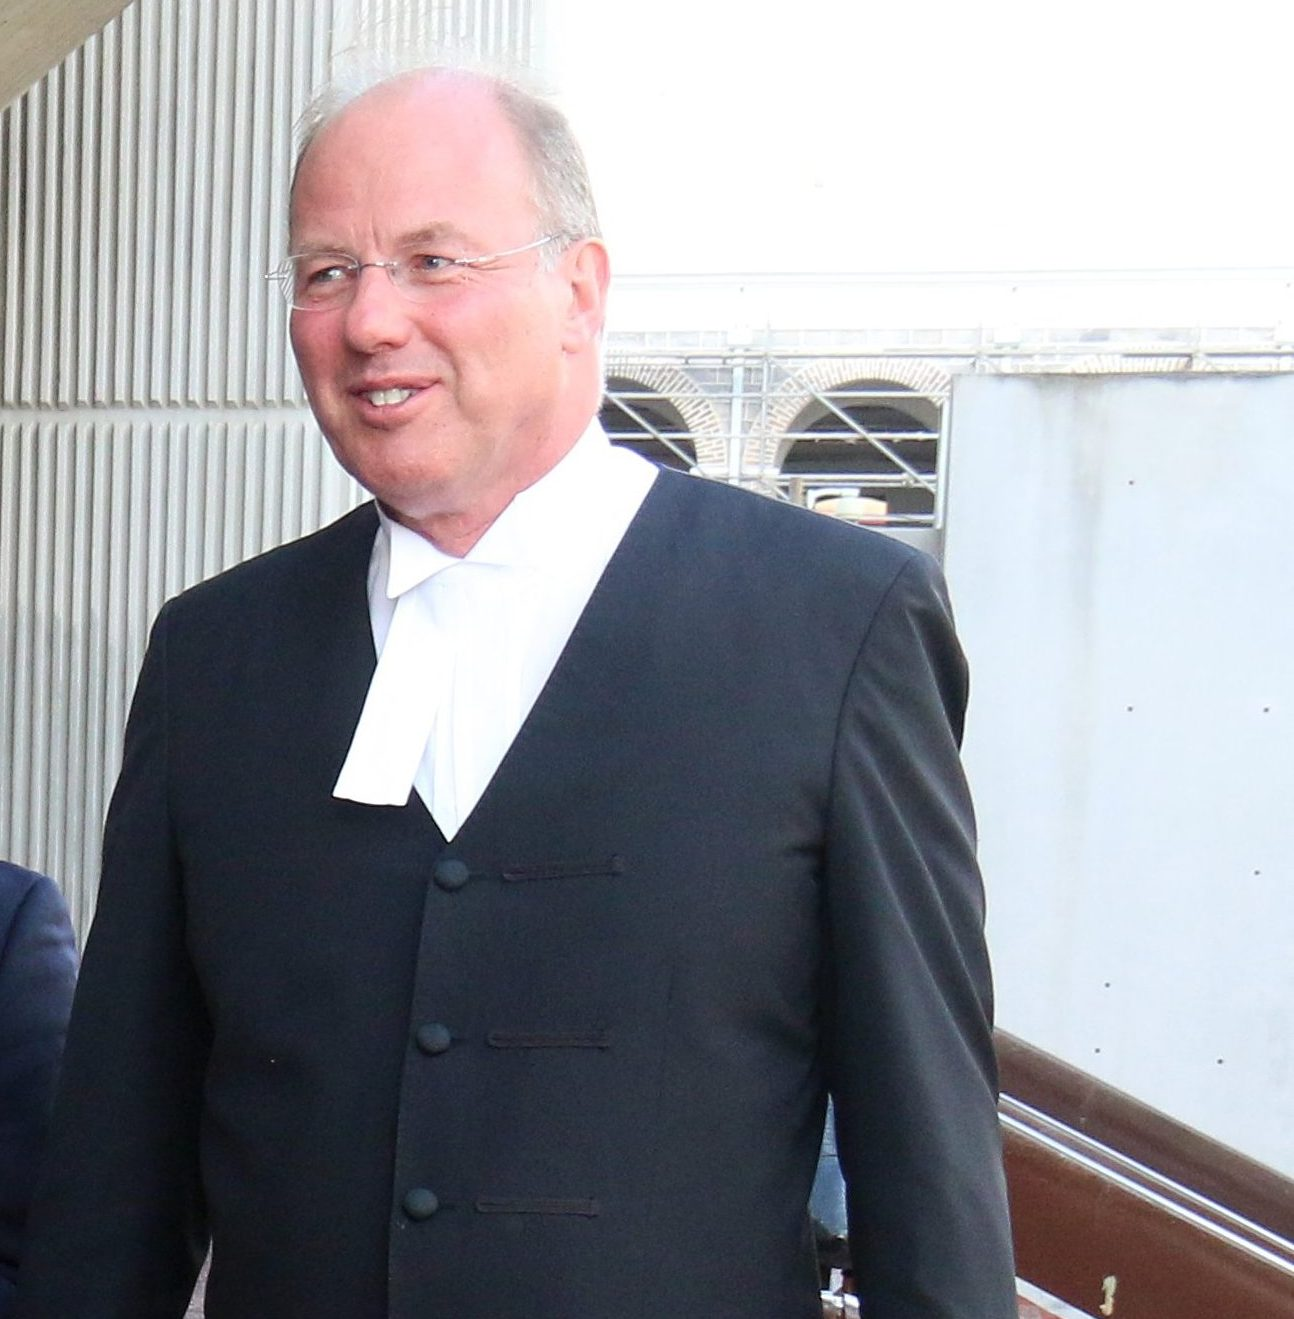 Timothy Starker QC (right) and Anand Ramlogan SC (2nd from right) outside the Hall of Justice after a session in court.  PHOTO:ANGELO M. MARCELLE